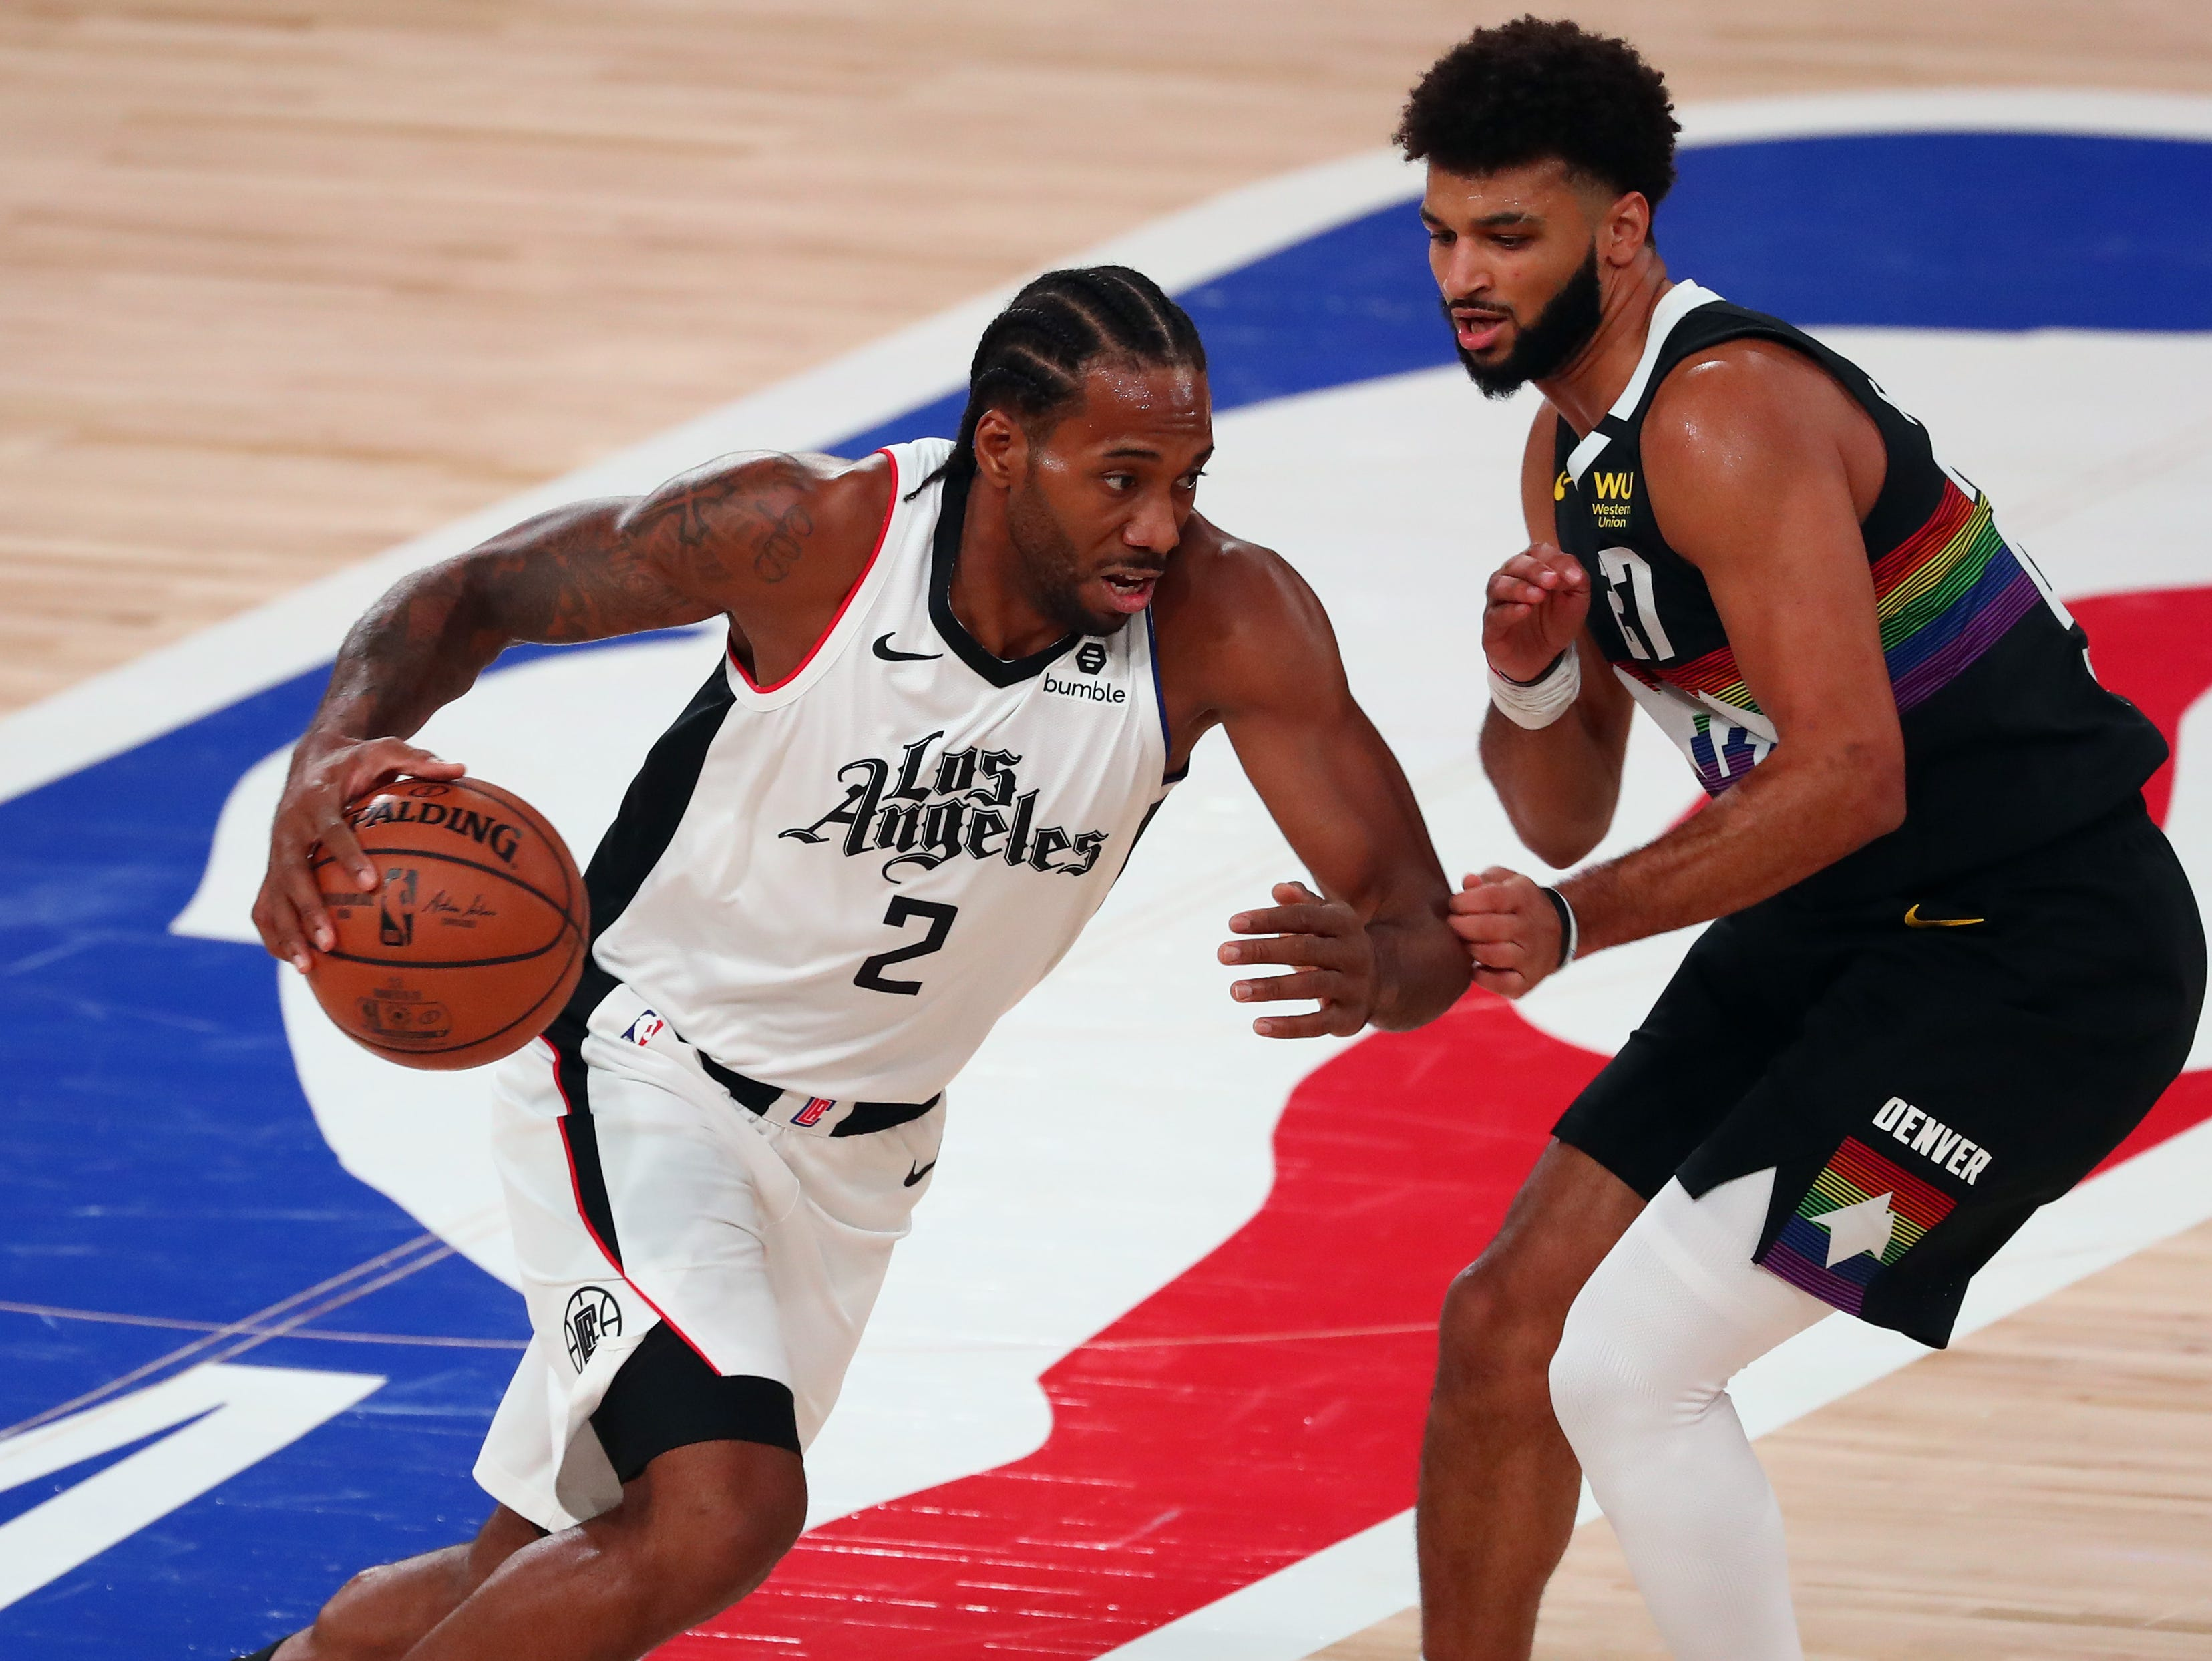 Clippers vs. Nuggets Game 7 picks: Who wins to reach West finals?